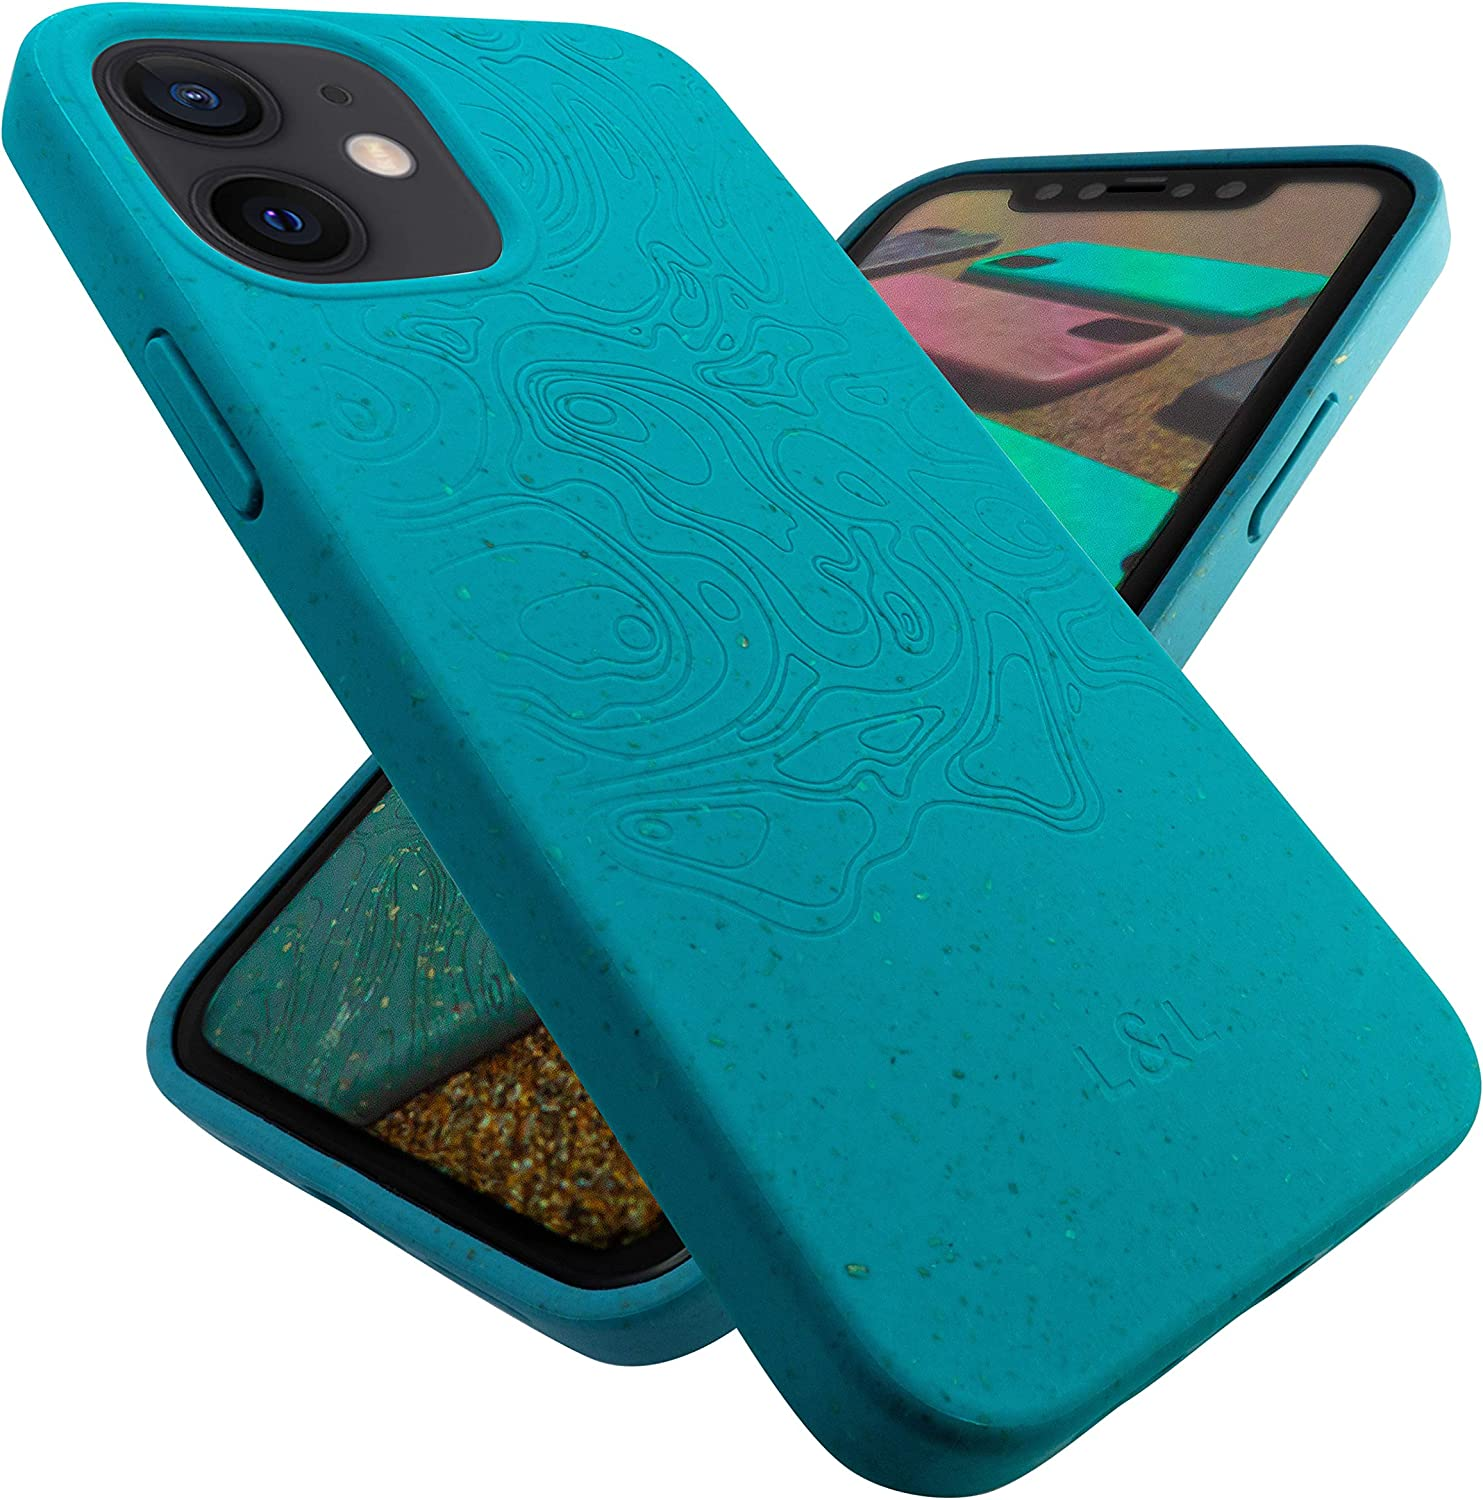 """Amazon.com: Slim Zero Waste Green Phone Case for iPhone 12 Mini 5.4"""", Self  Cleaning Biodegradable and Compostable Eco Friendly iPhone Case, Teal Green  Sustainable Protective Plastic Free Vegan Phone Cover"""